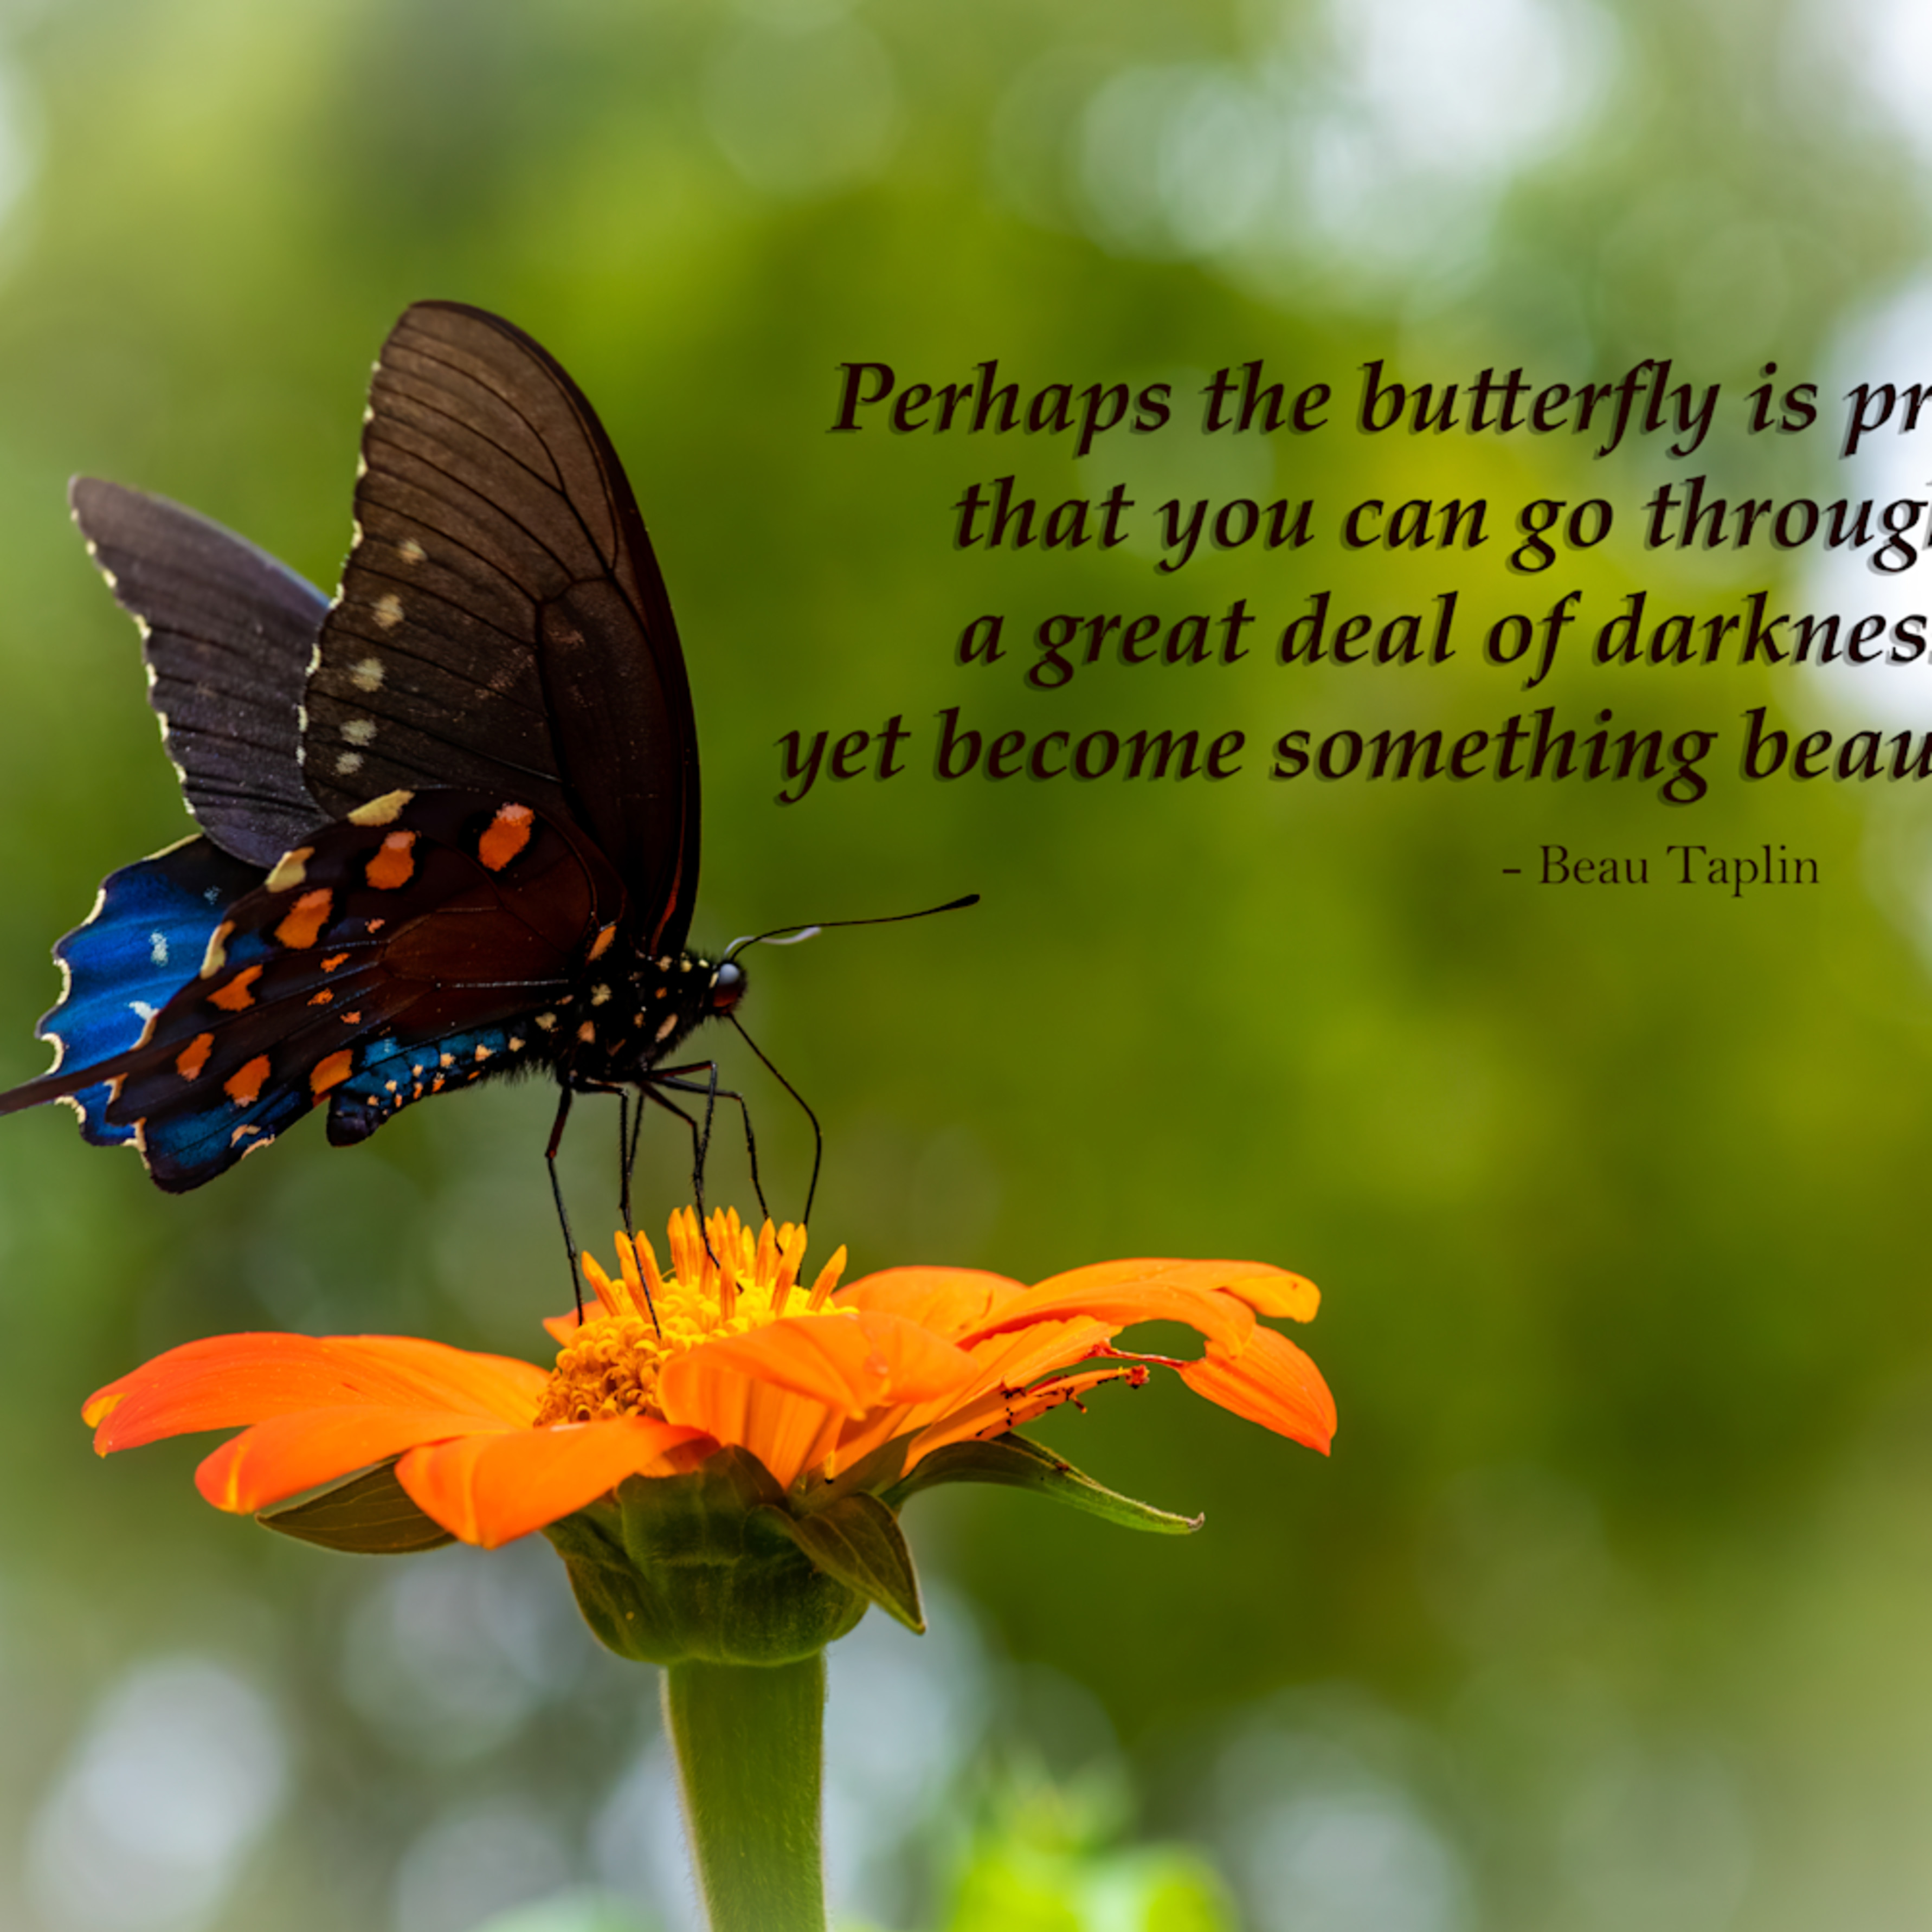 Perhaps the butterfly is proof  dudbw3